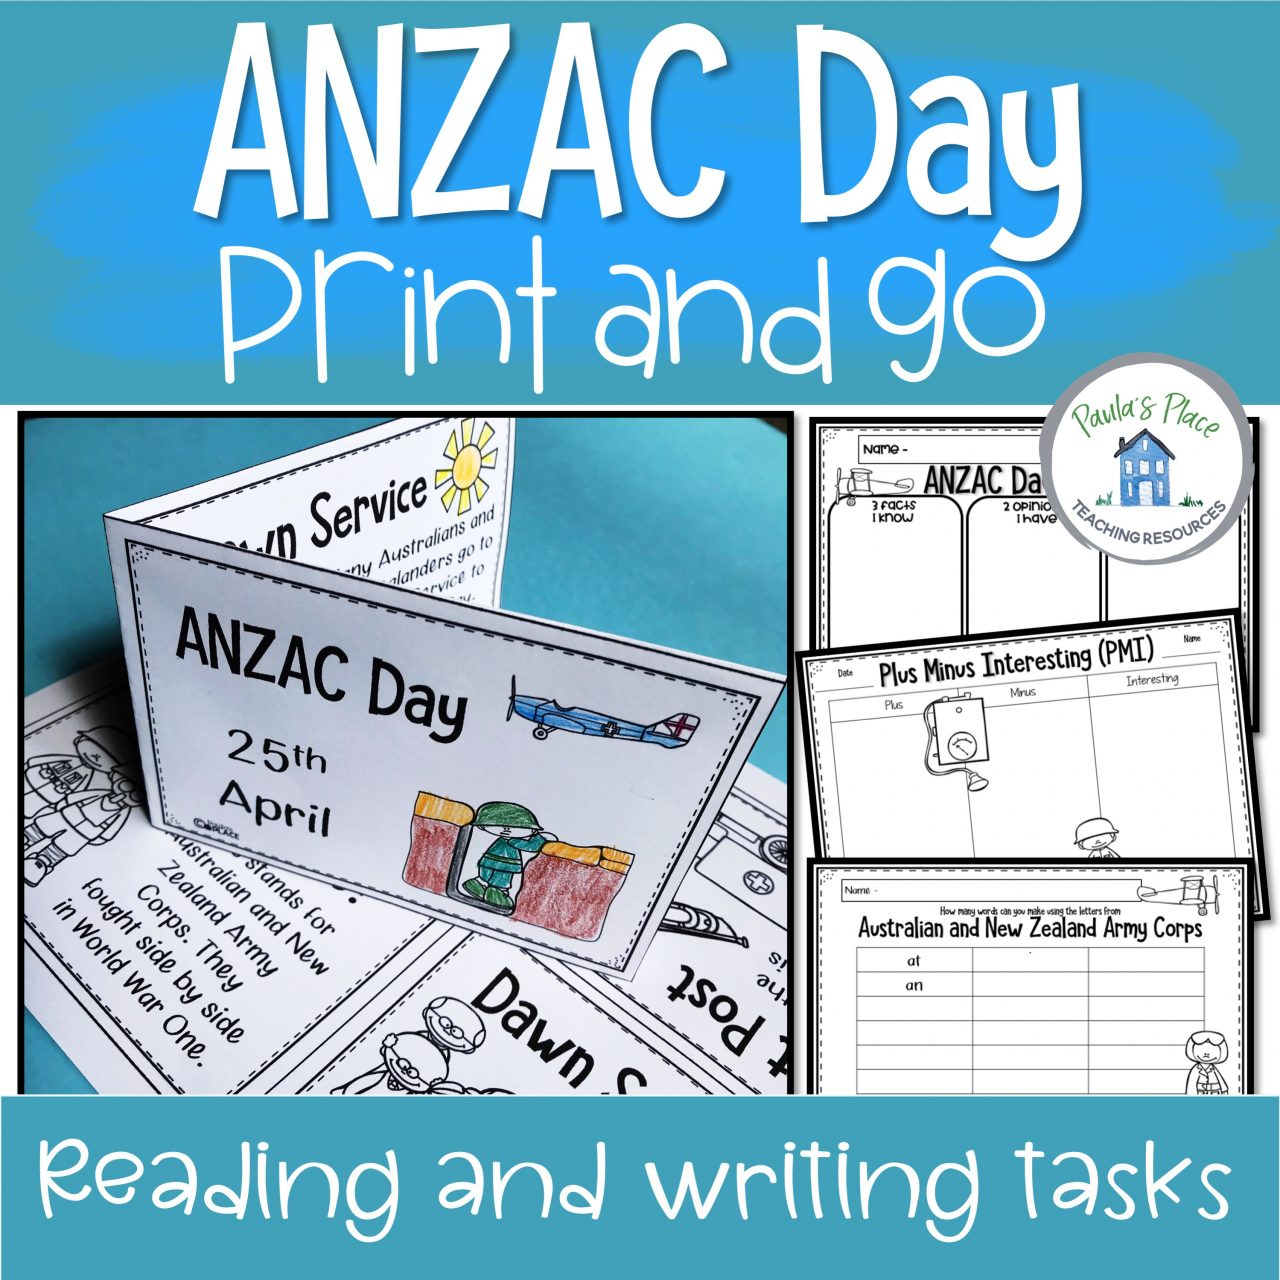 Make an ANZAC Day booklet